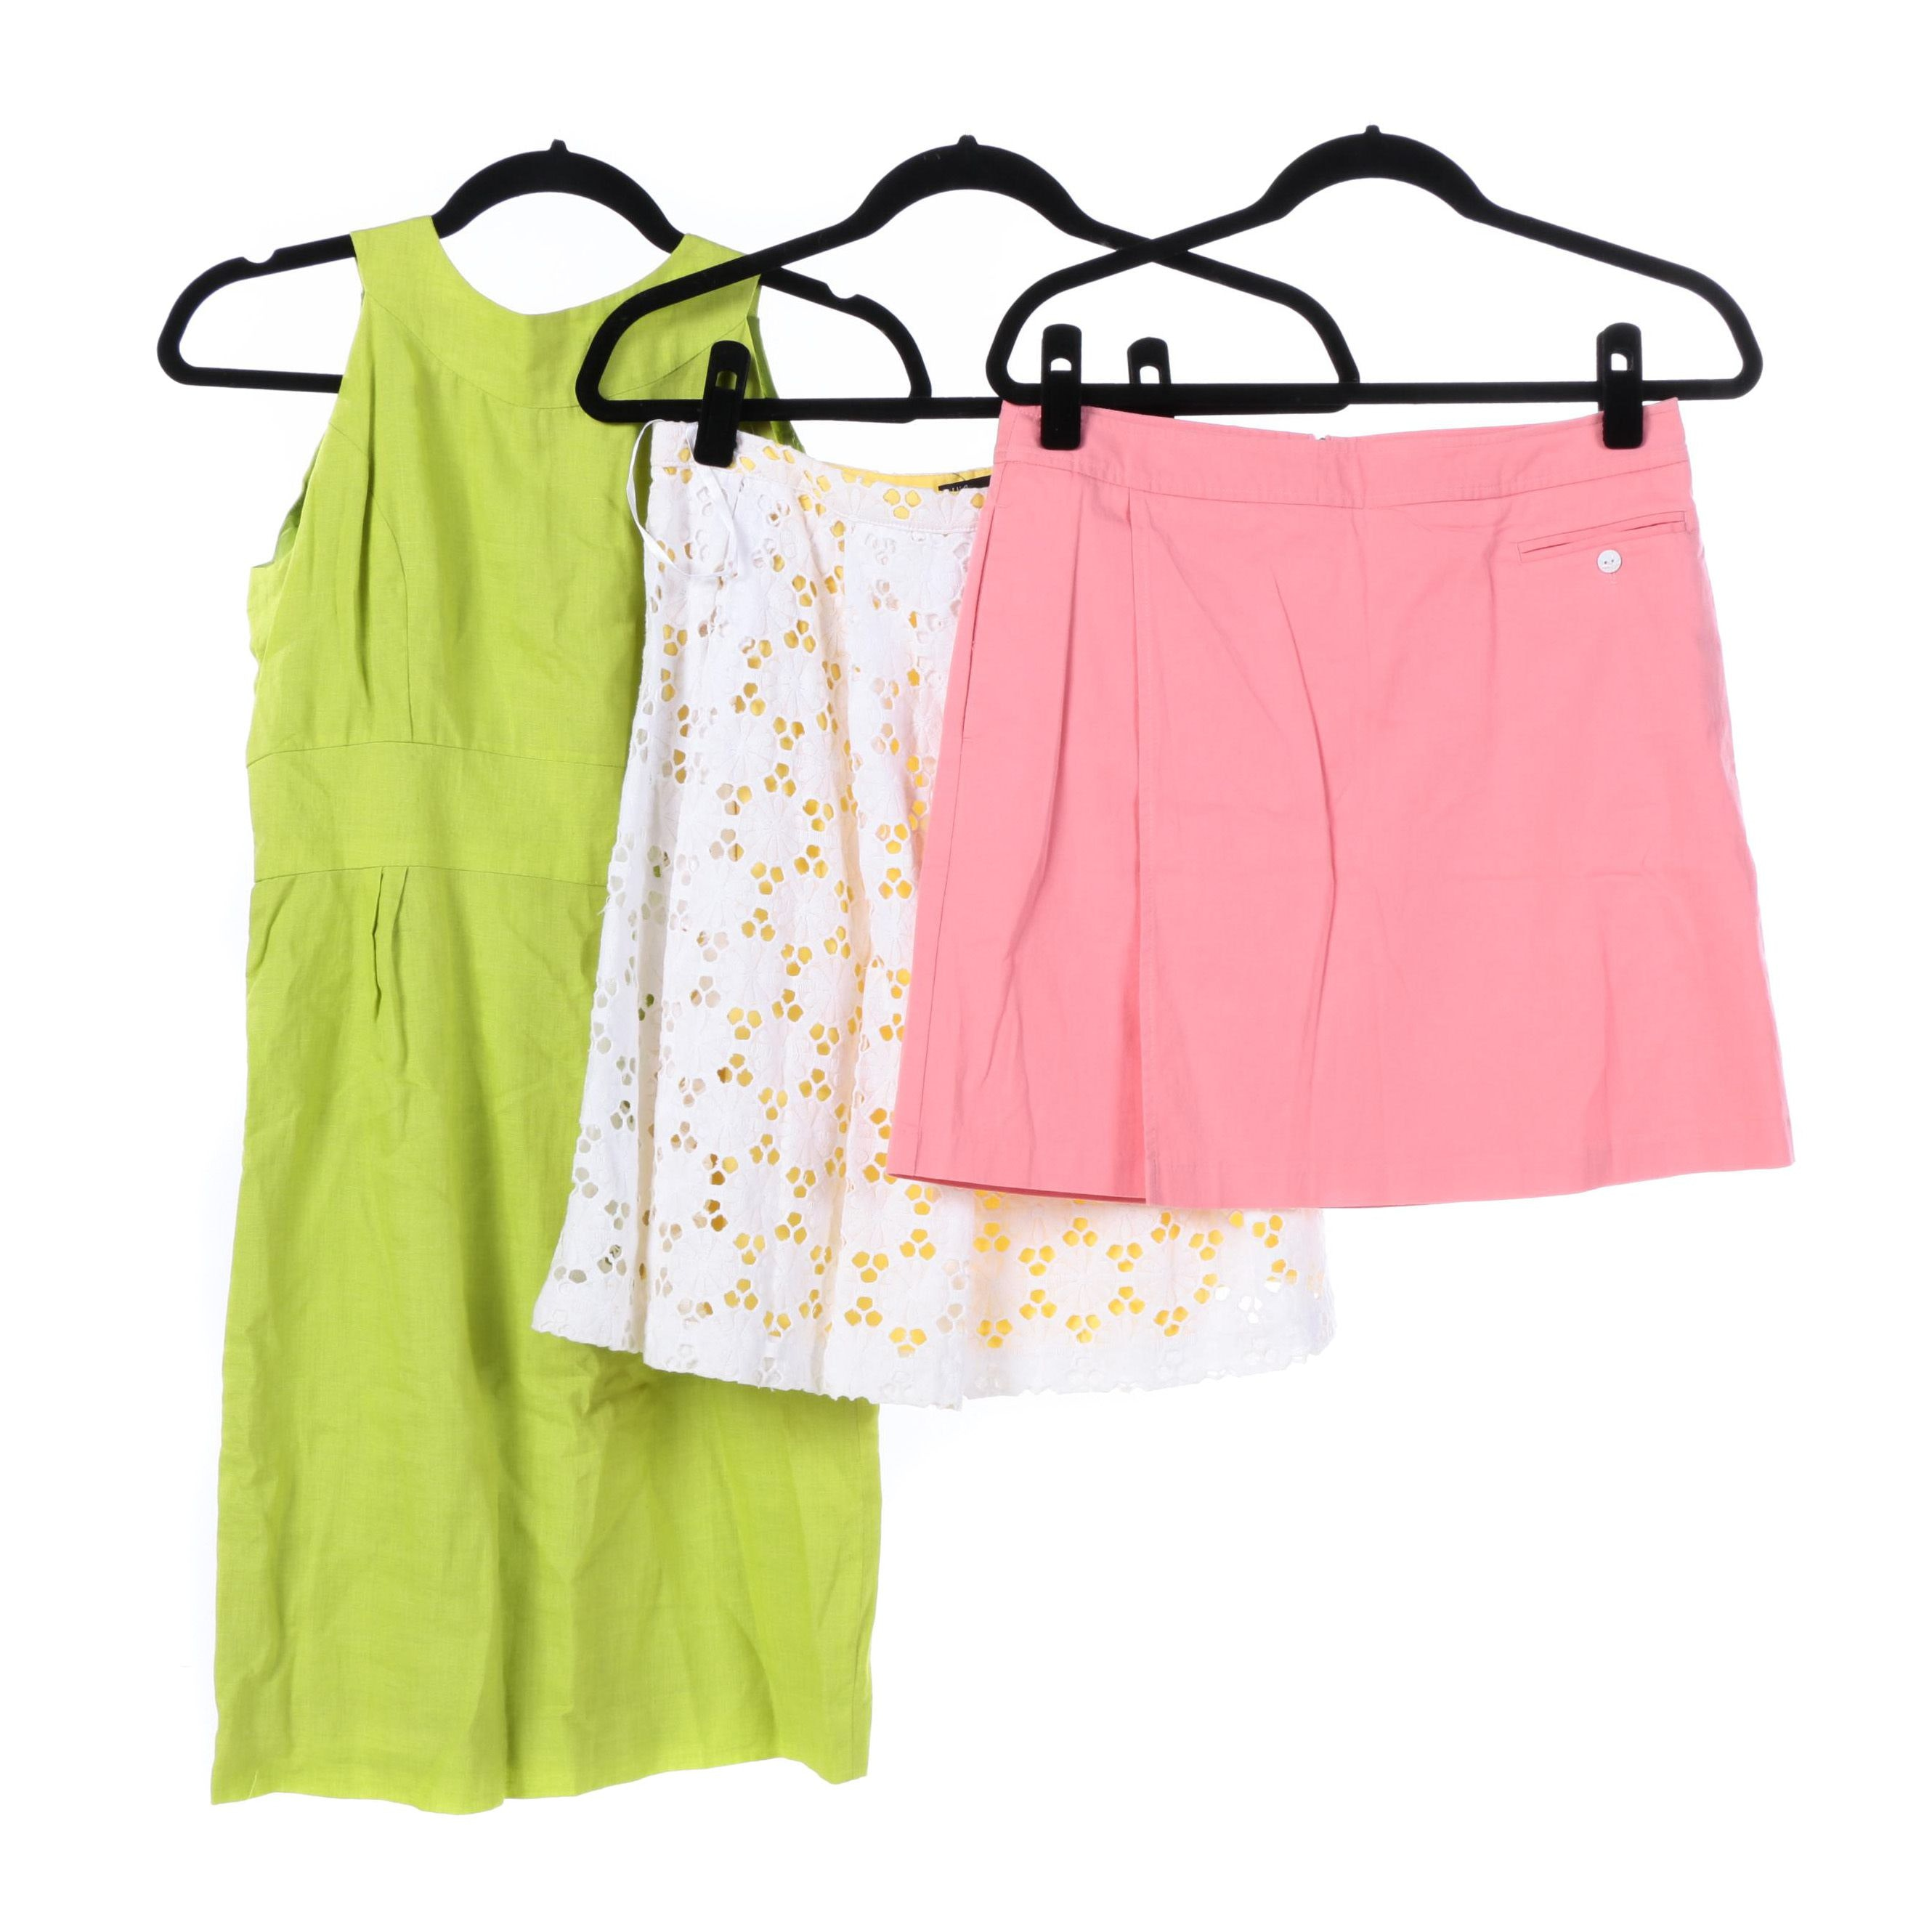 Women's Skirts and Dress Including Lily's of Beverly Hills